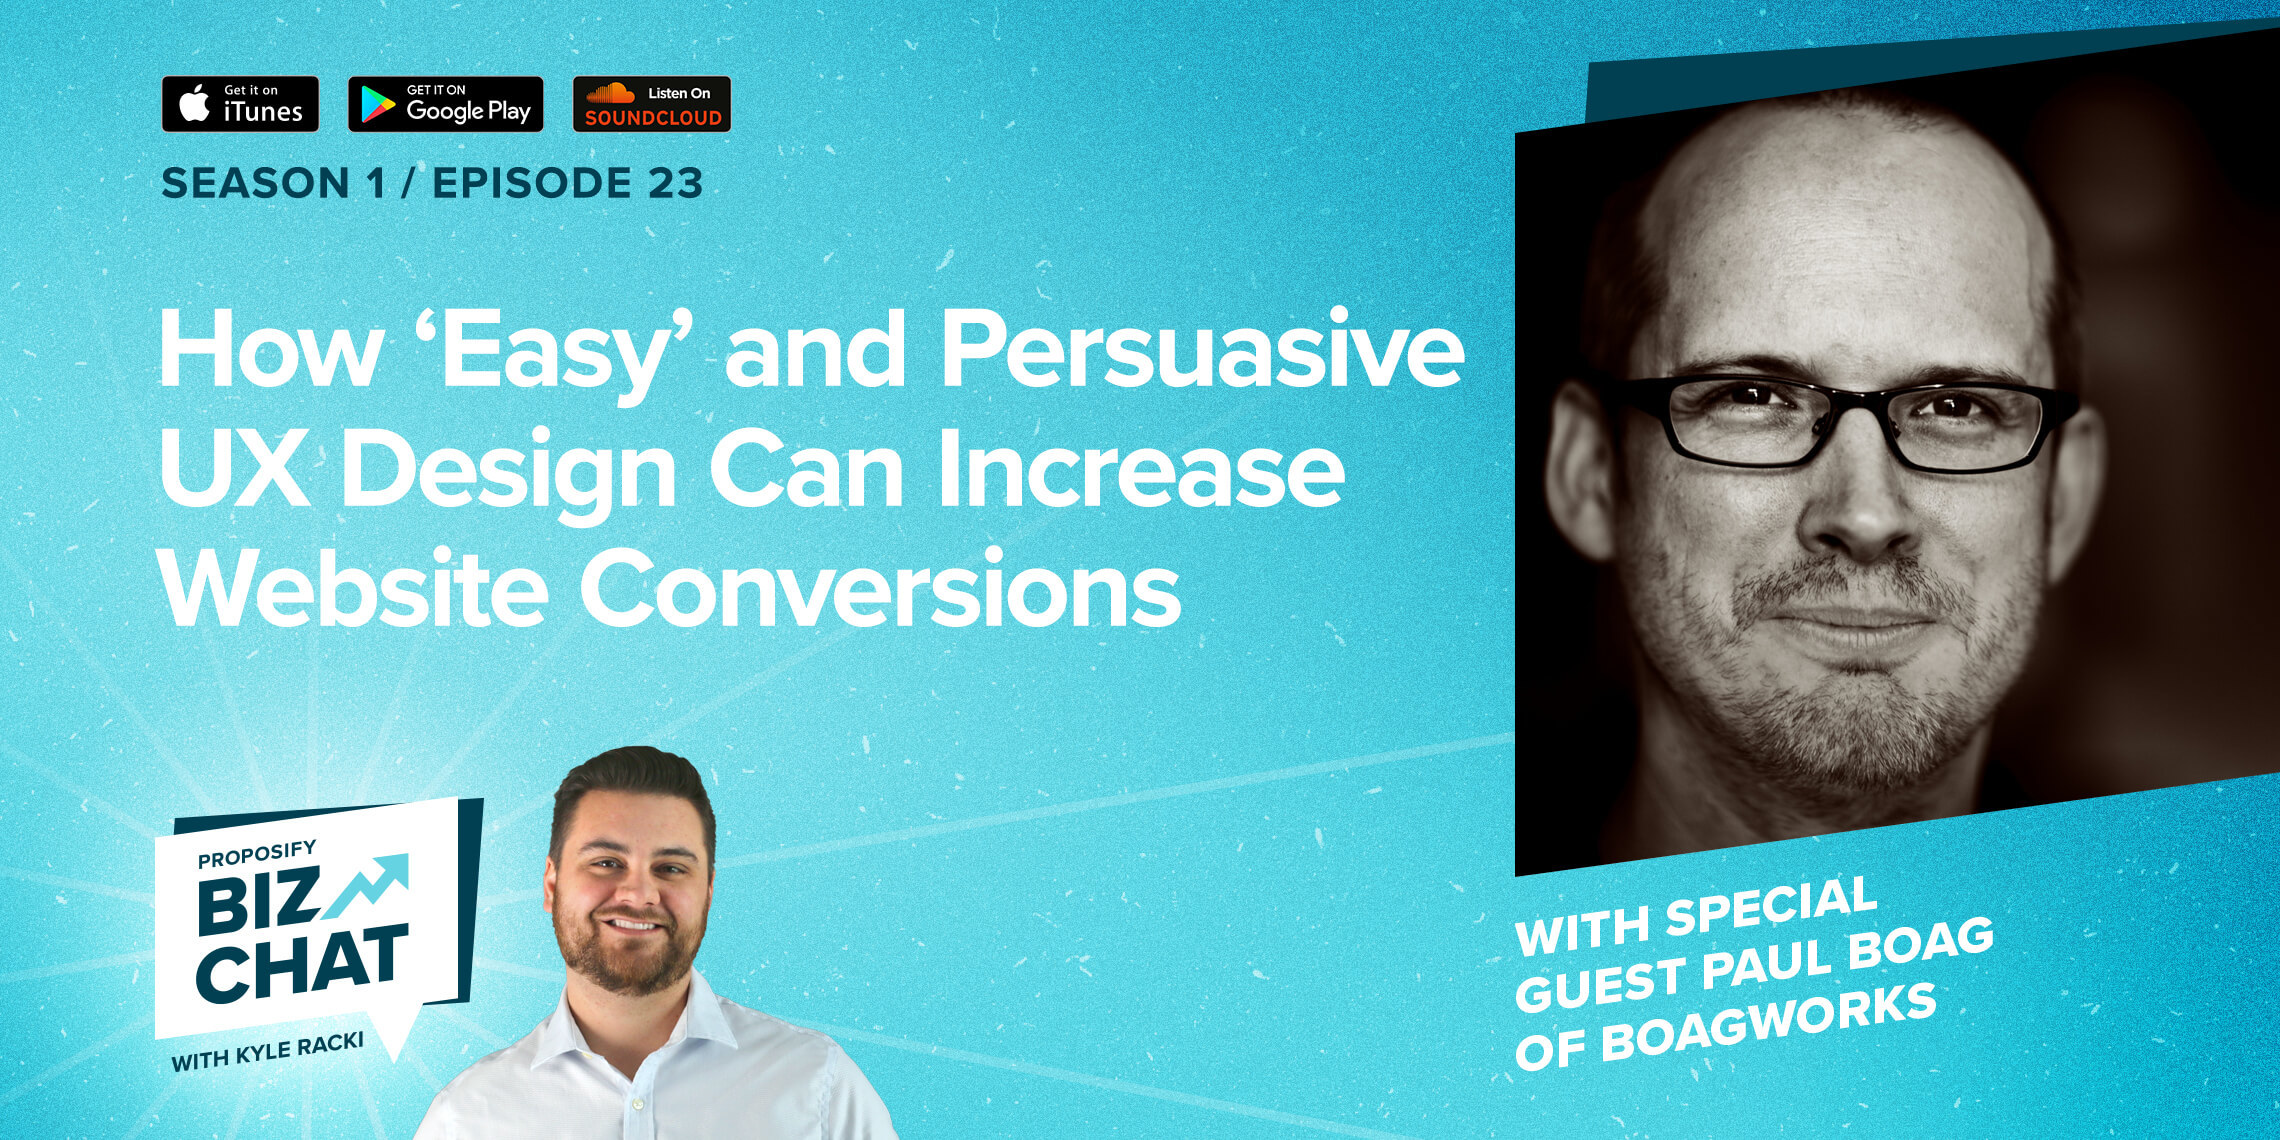 How 'Easy' and Persuasive UX Design Can Increase Website Conversions